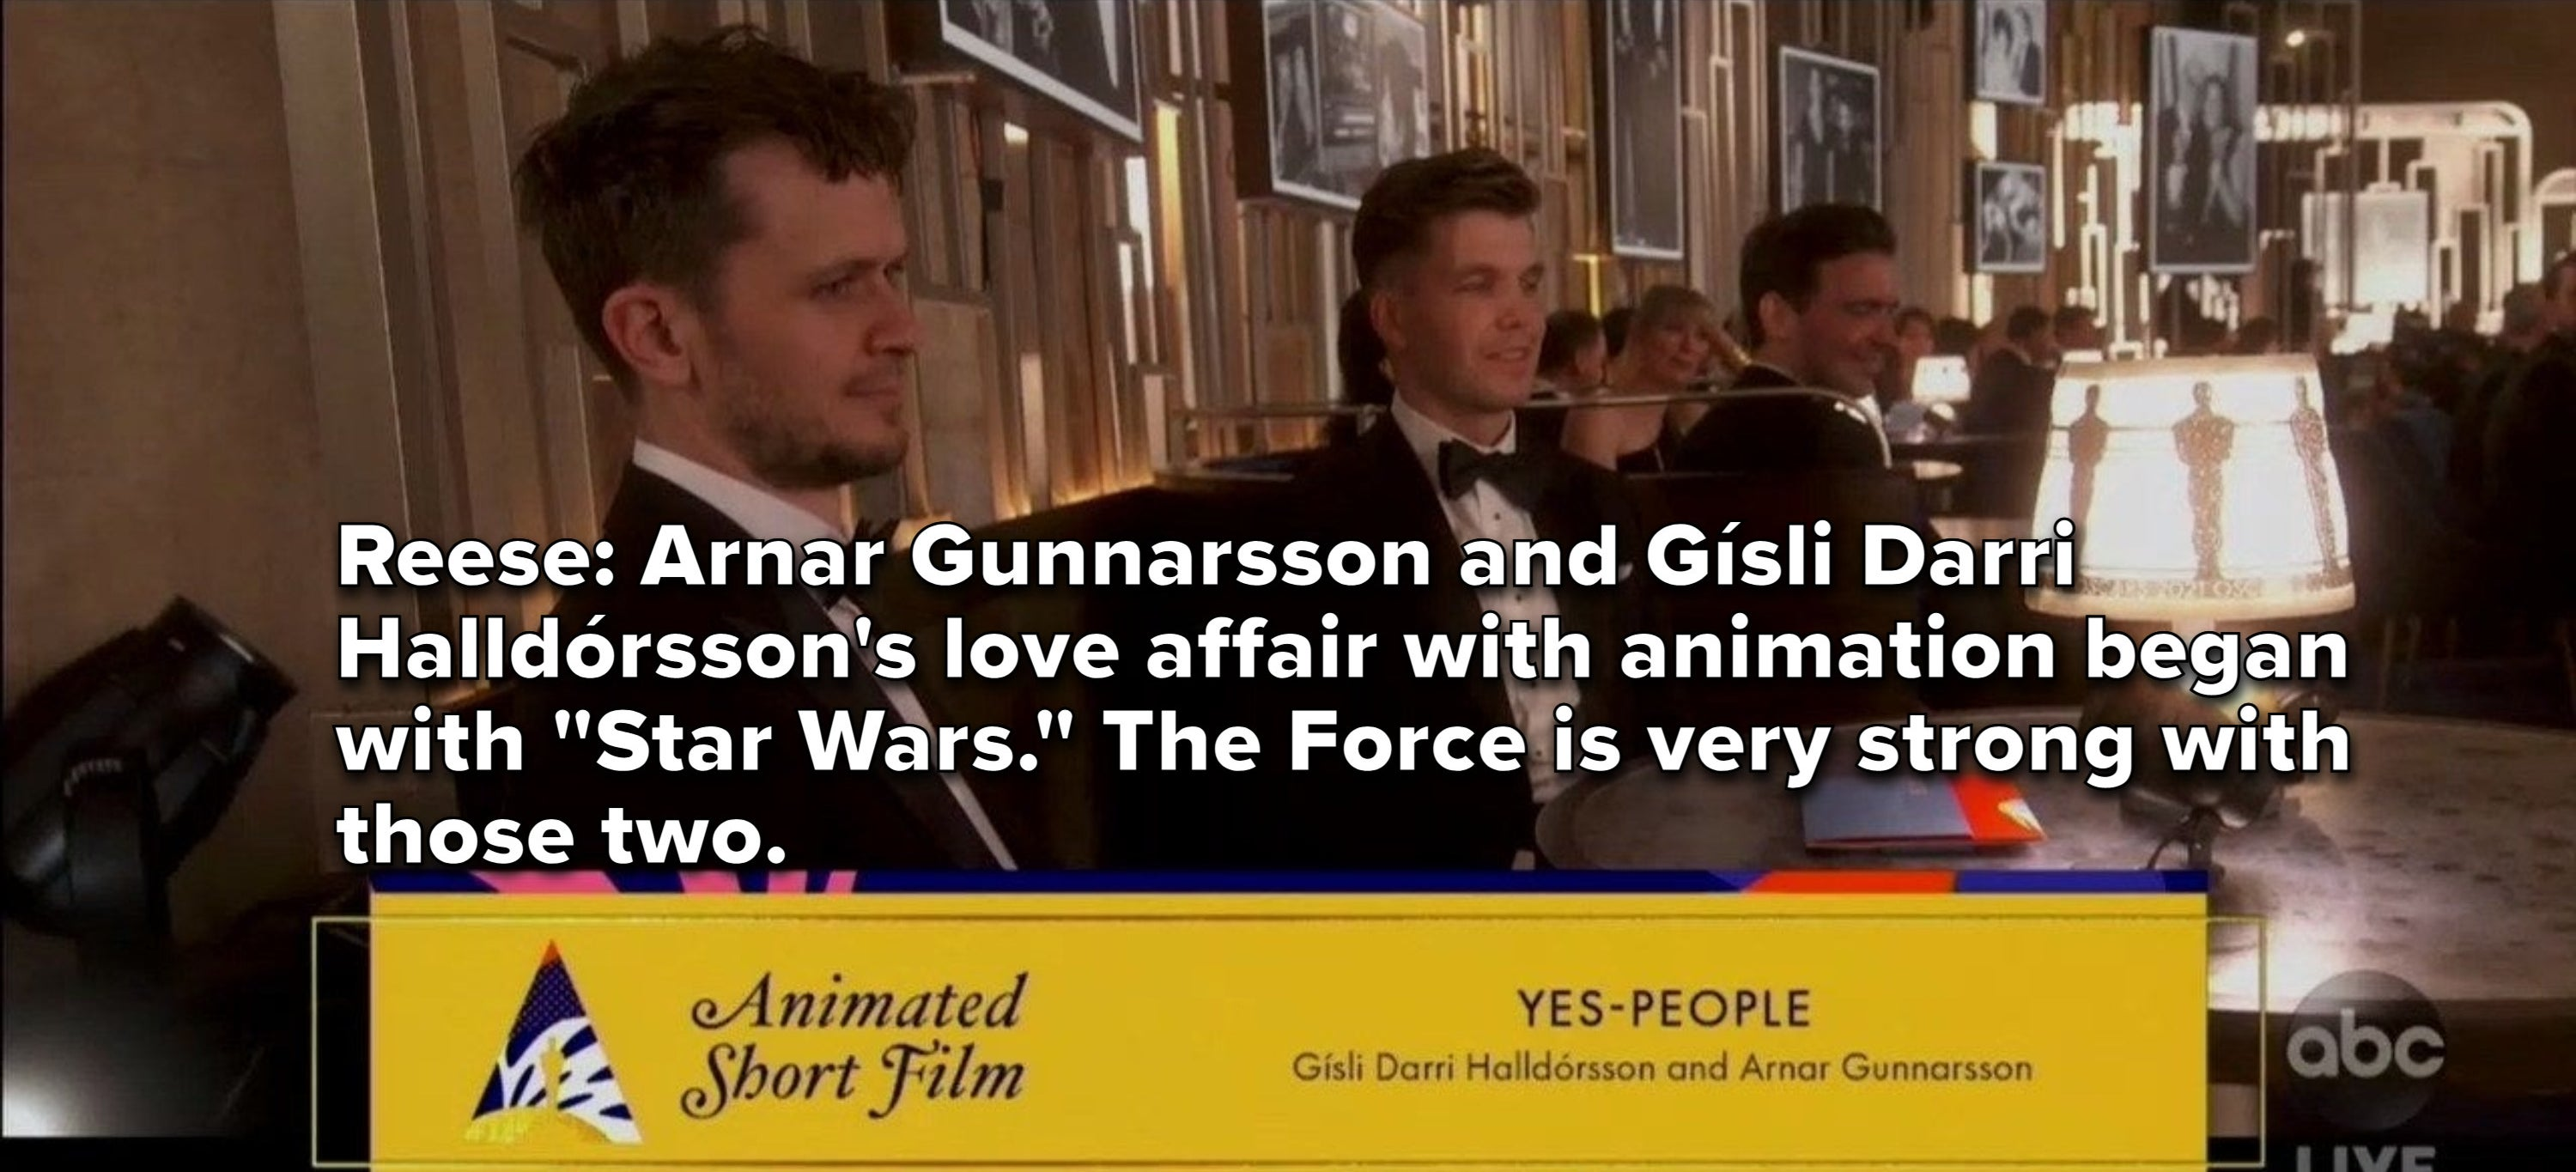 """Reese saying, """"Arnar Gunnarsson and Gísli Darri Halldórsson's love affair with animation began with 'Star Wars'; the Force is very strong with those two"""""""